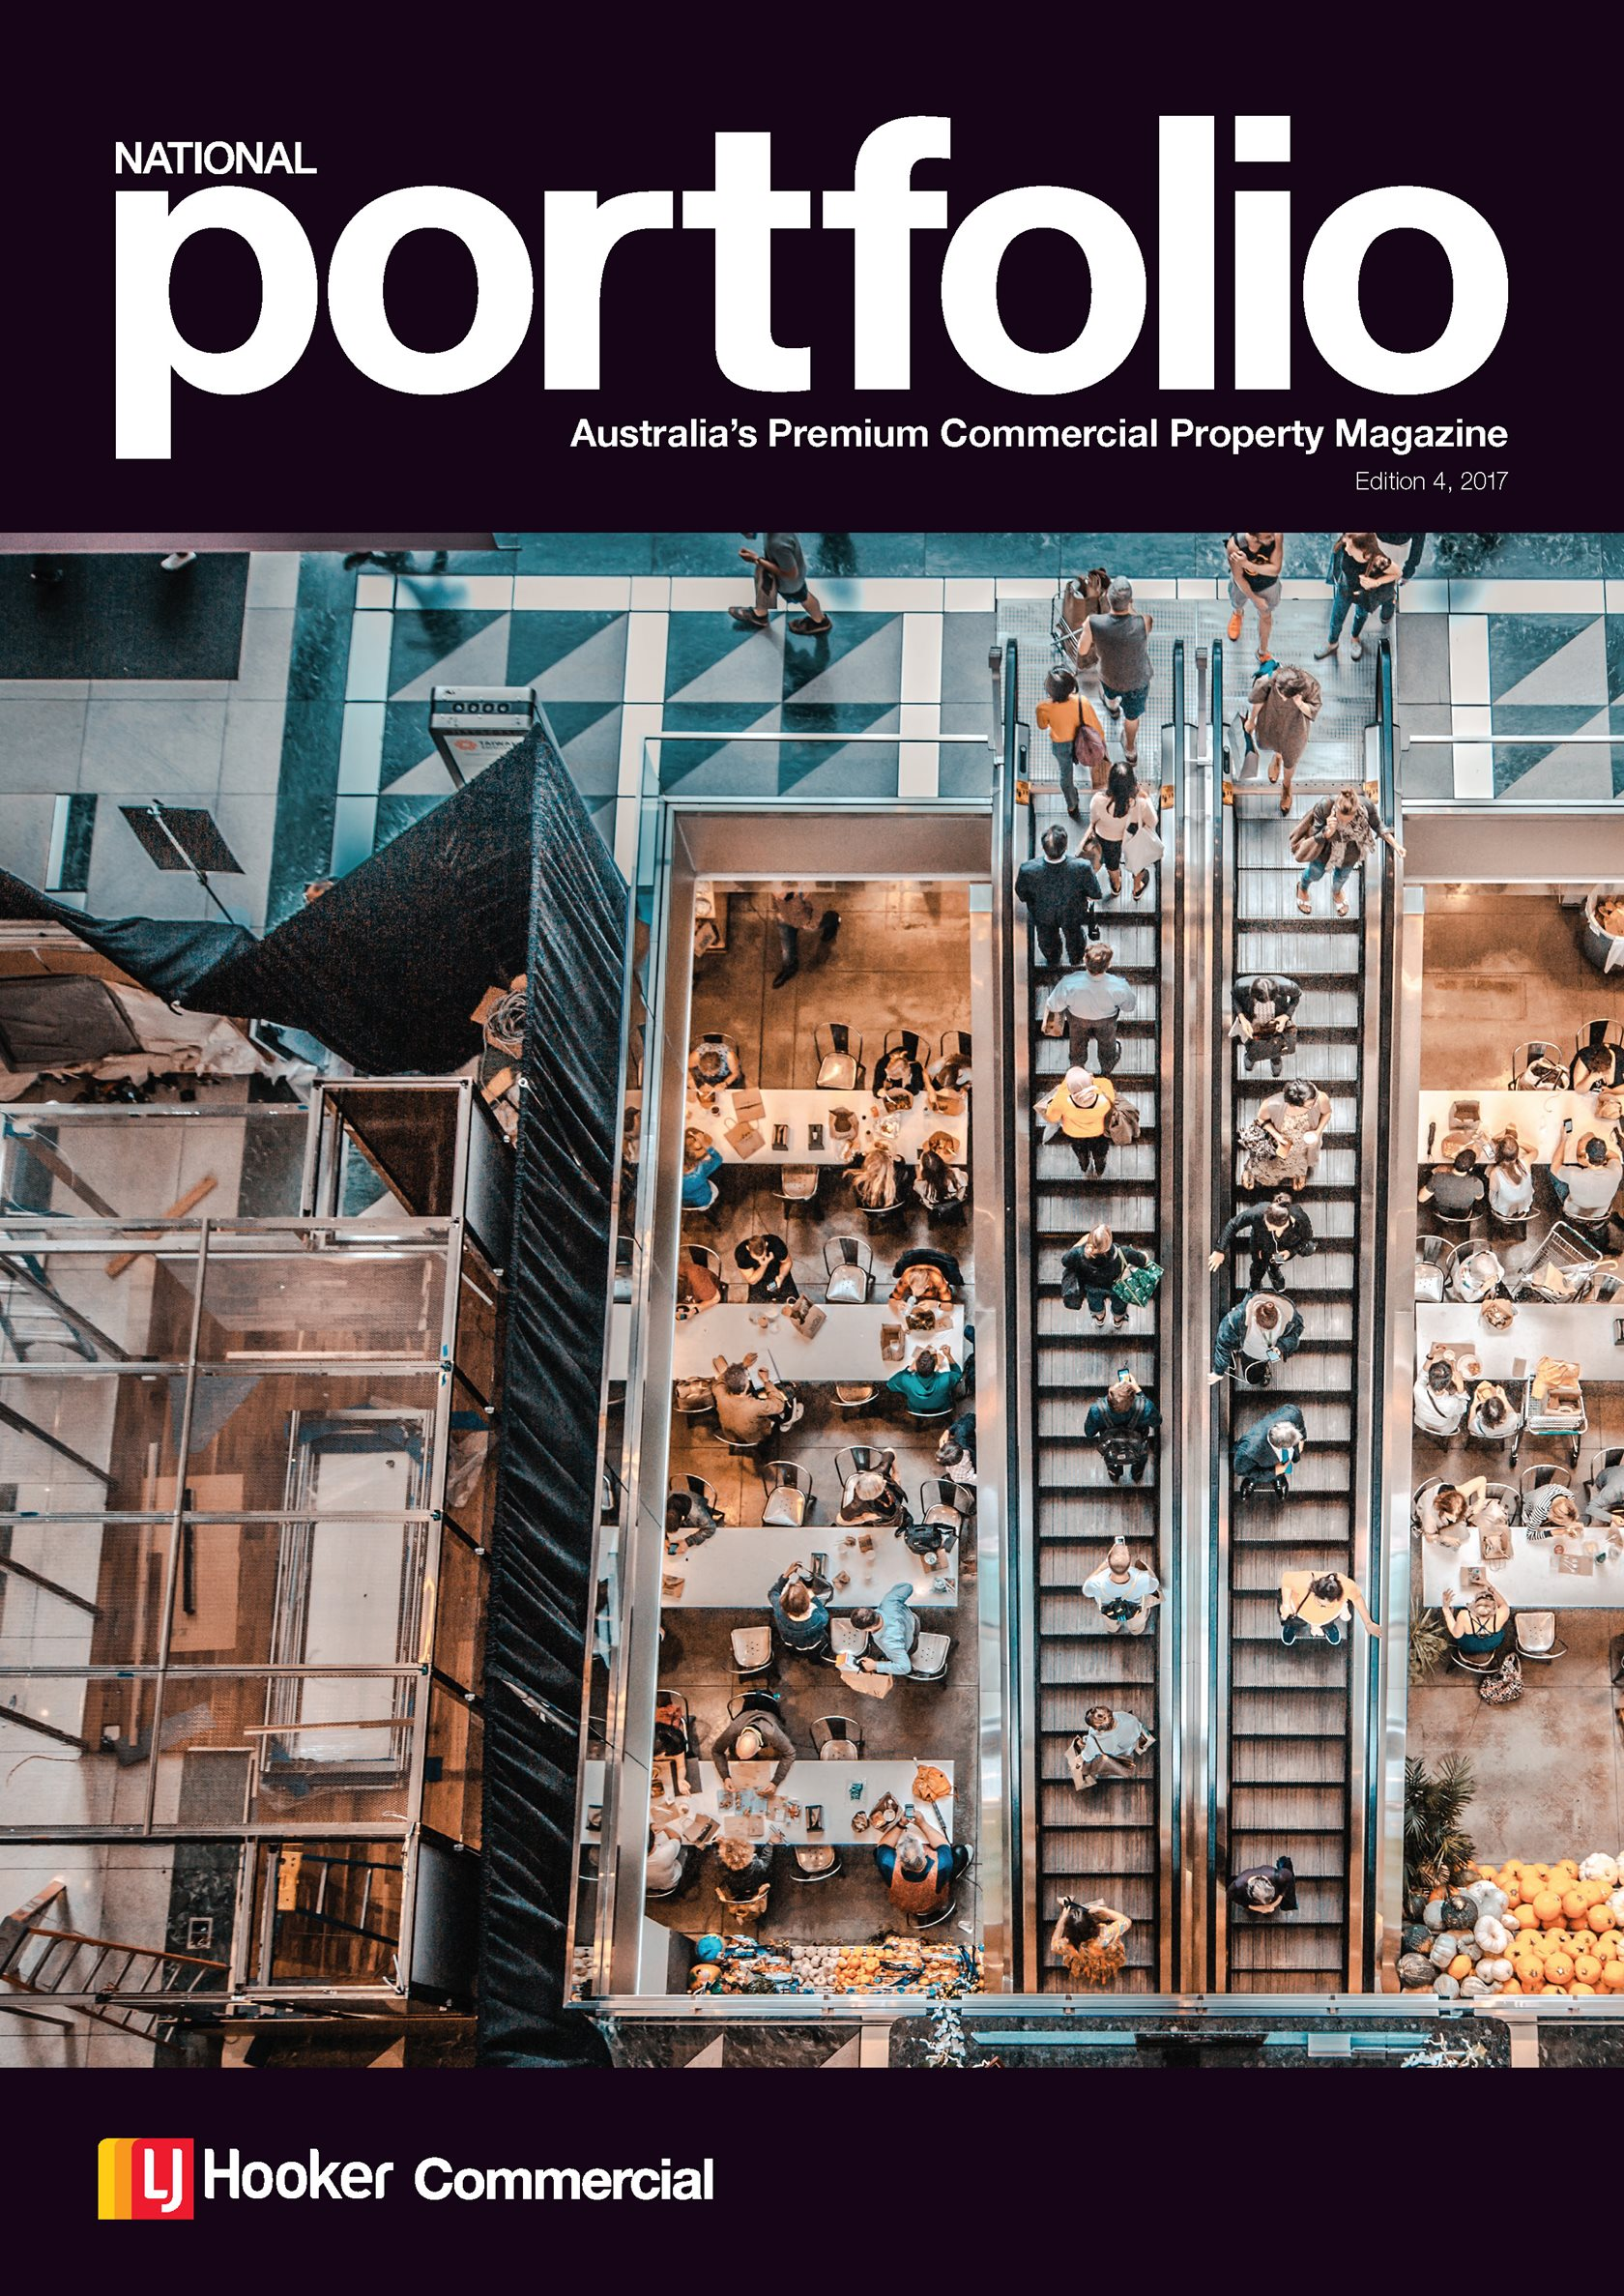 National Portfolio Magazine